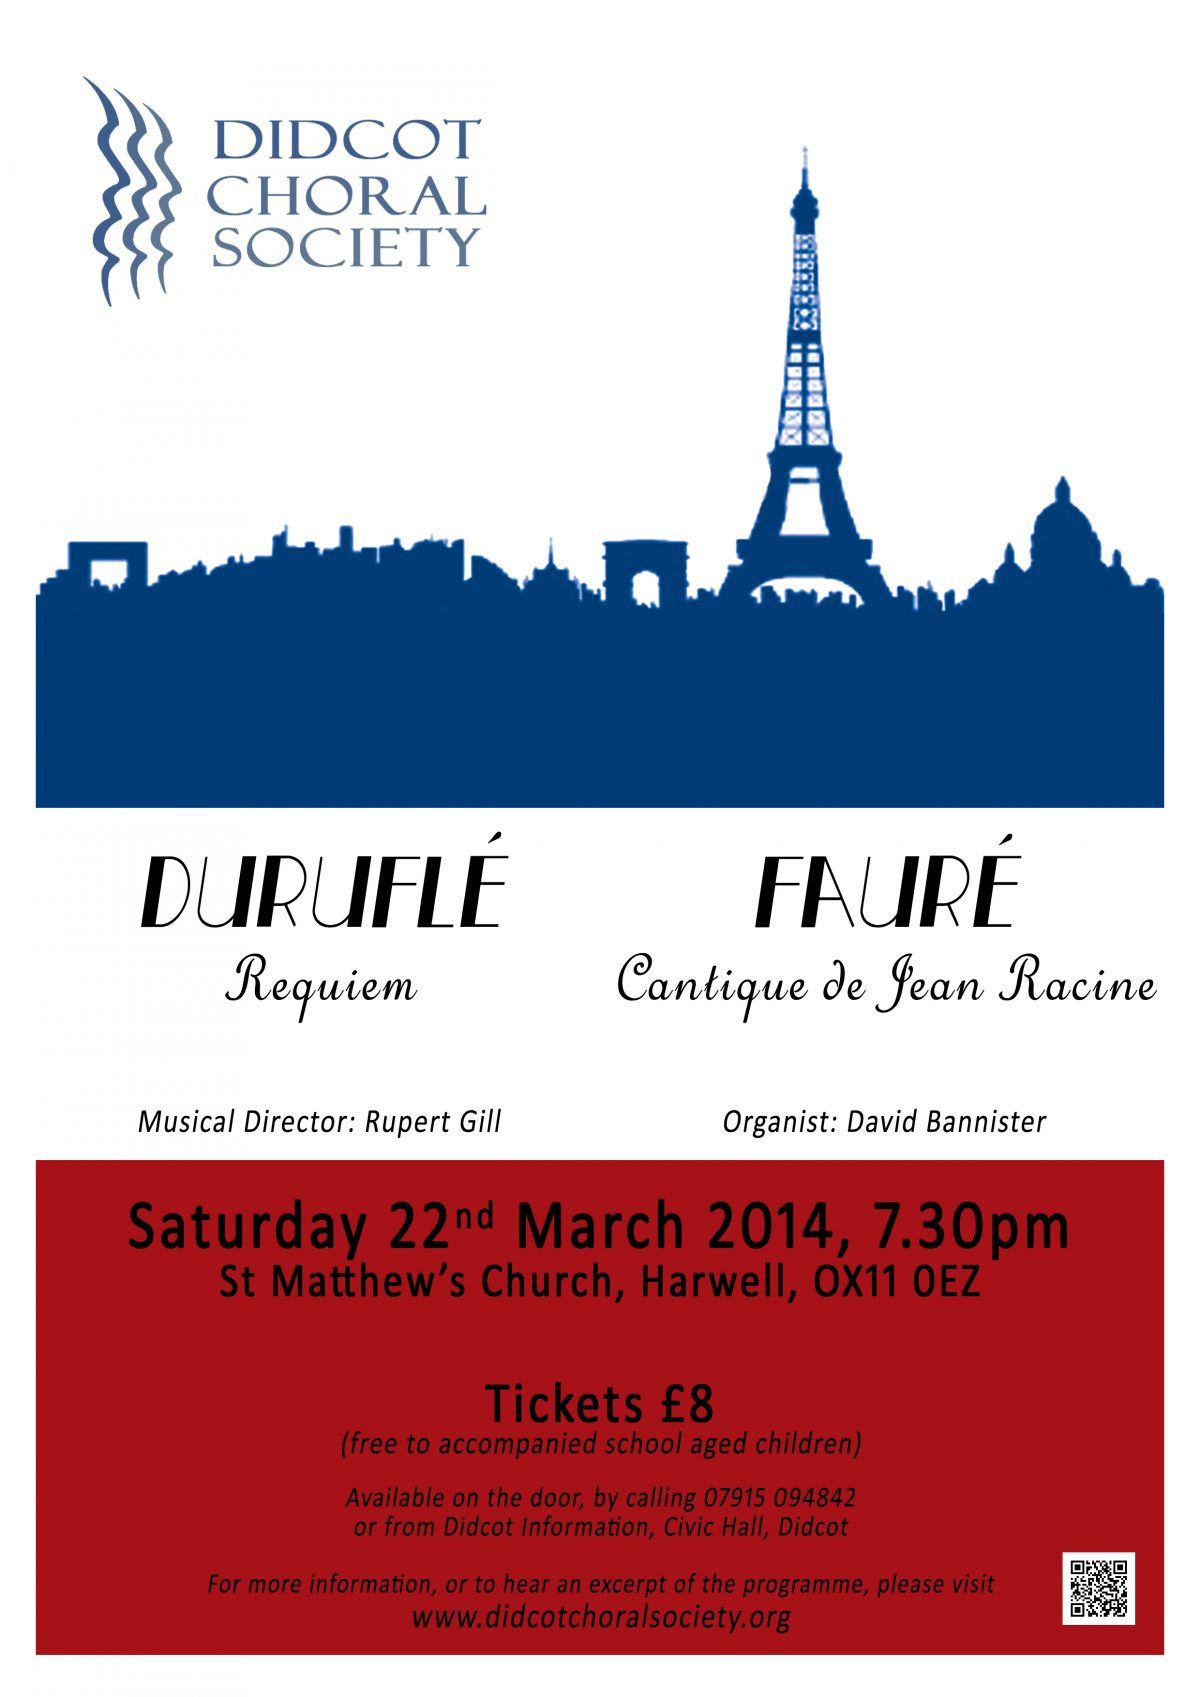 Durufle Requiem March 2014